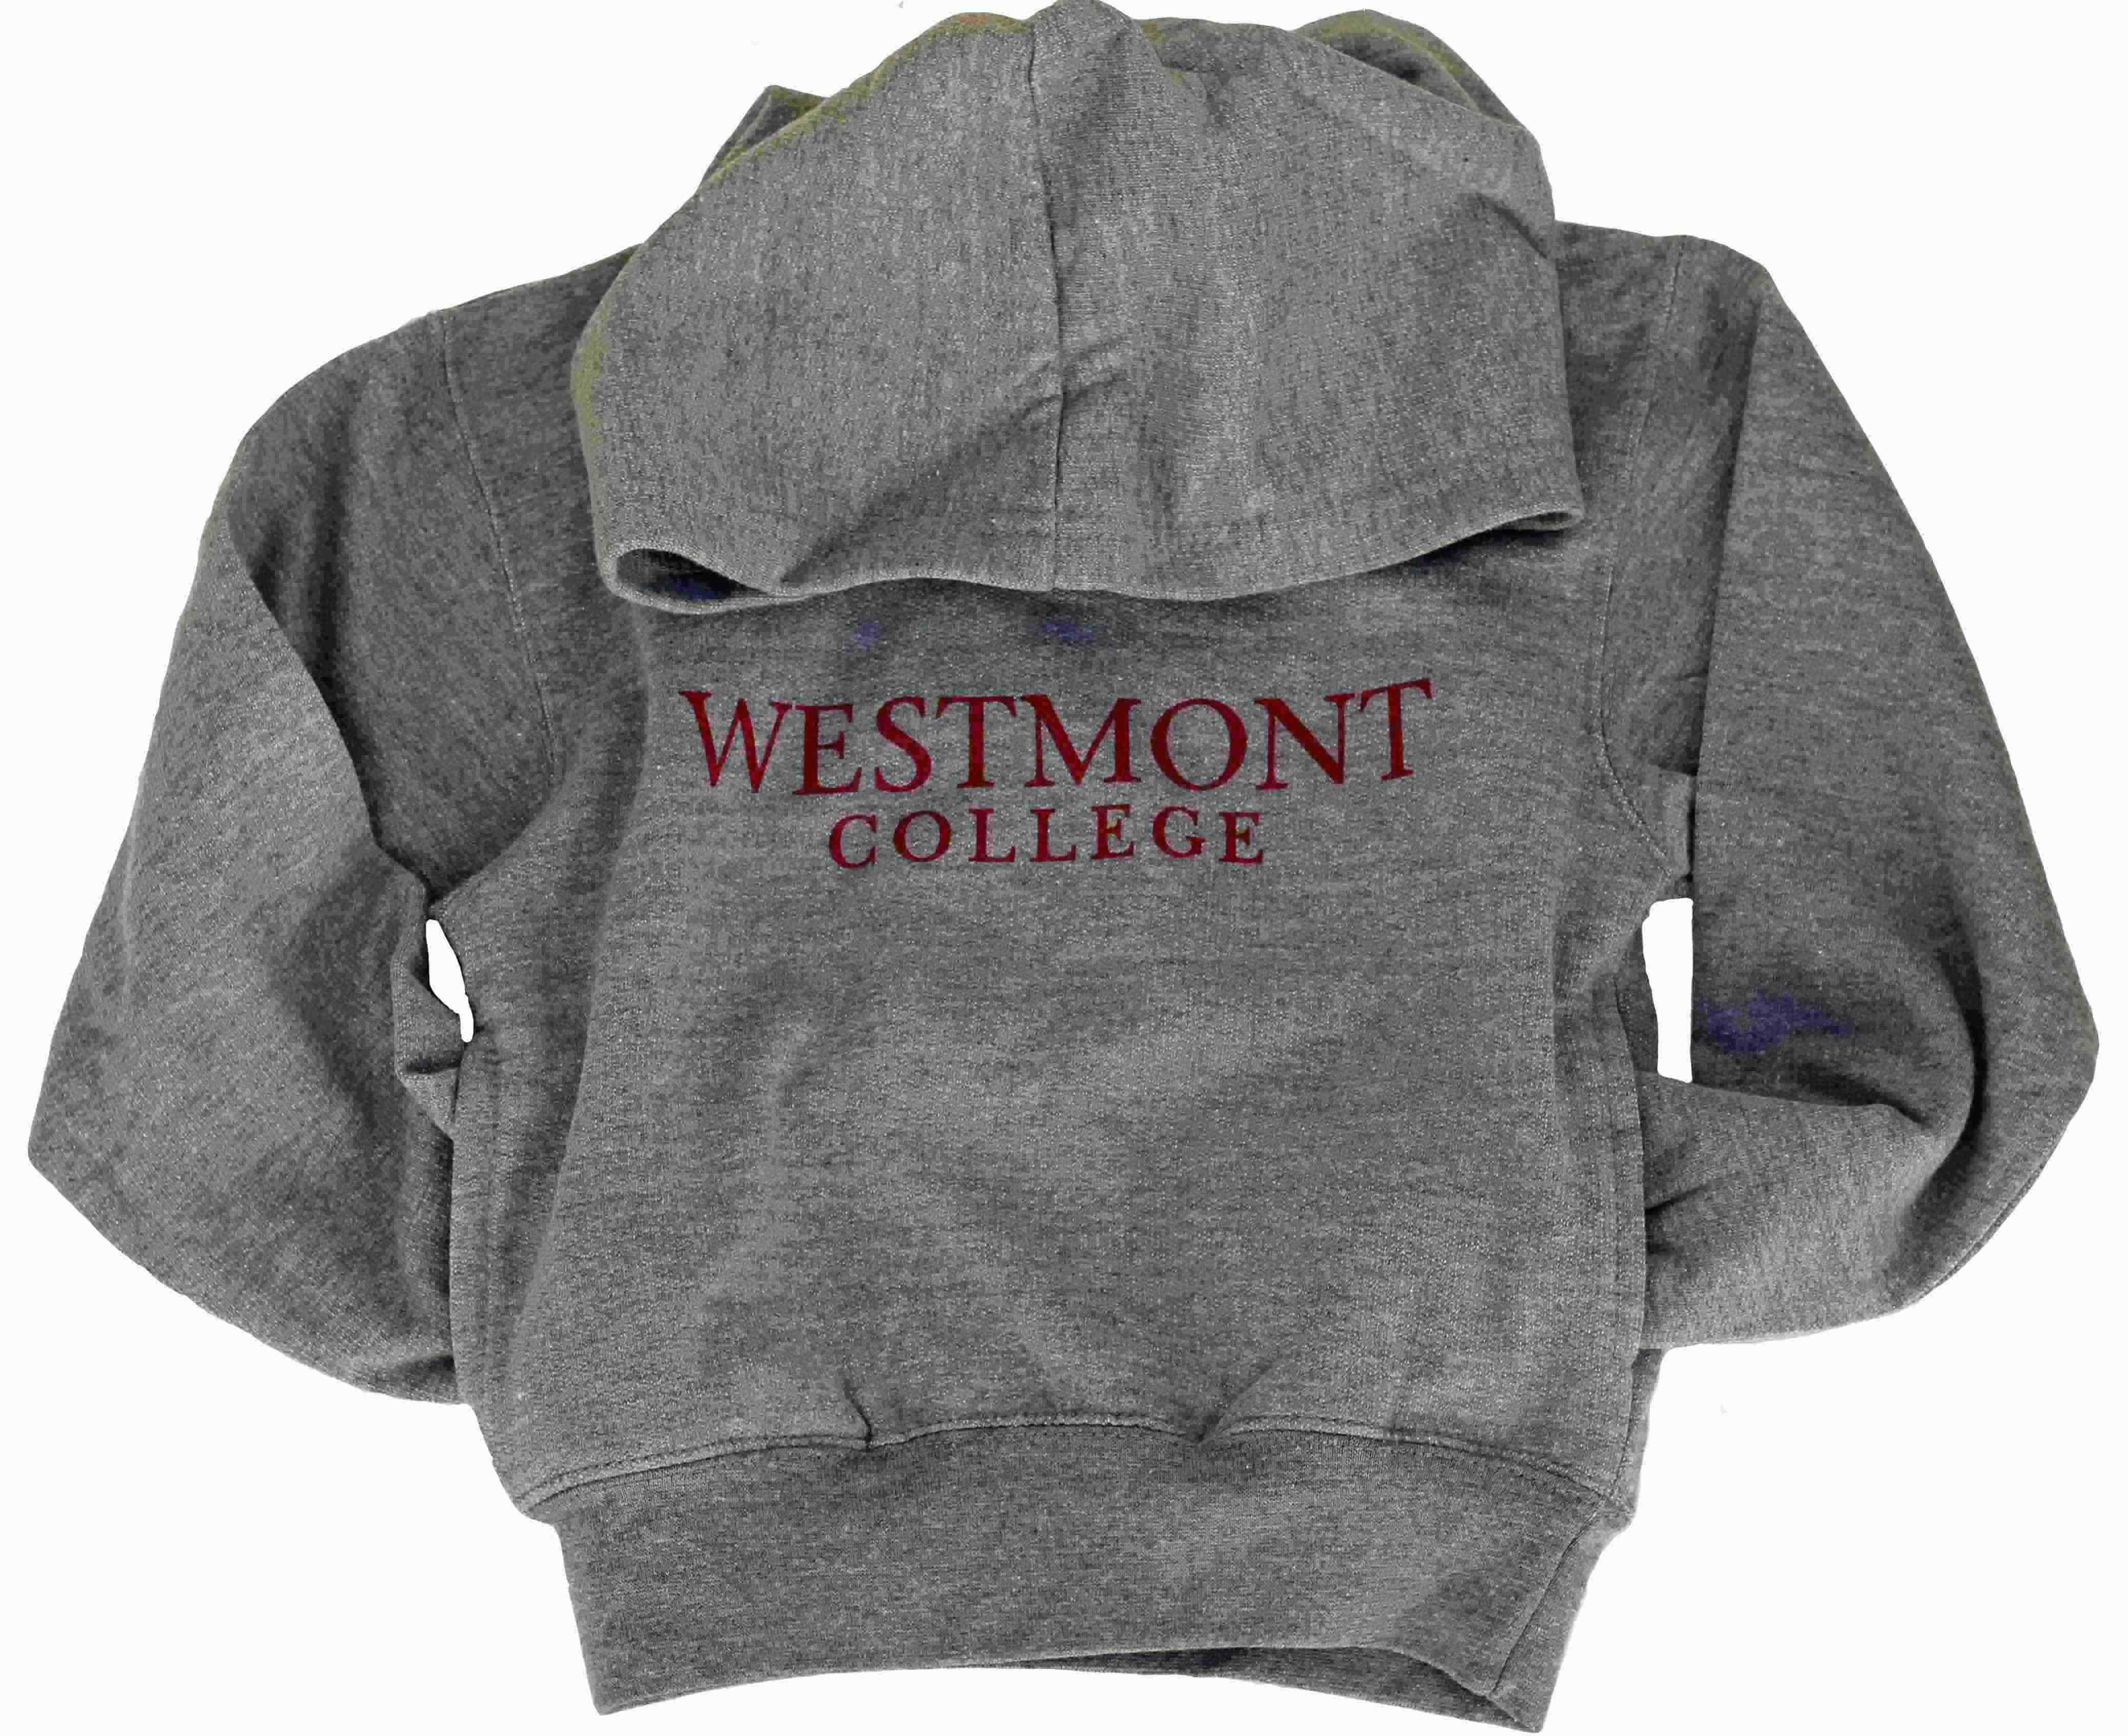 Image for the MV Sport Westmont College   Hood Youth product